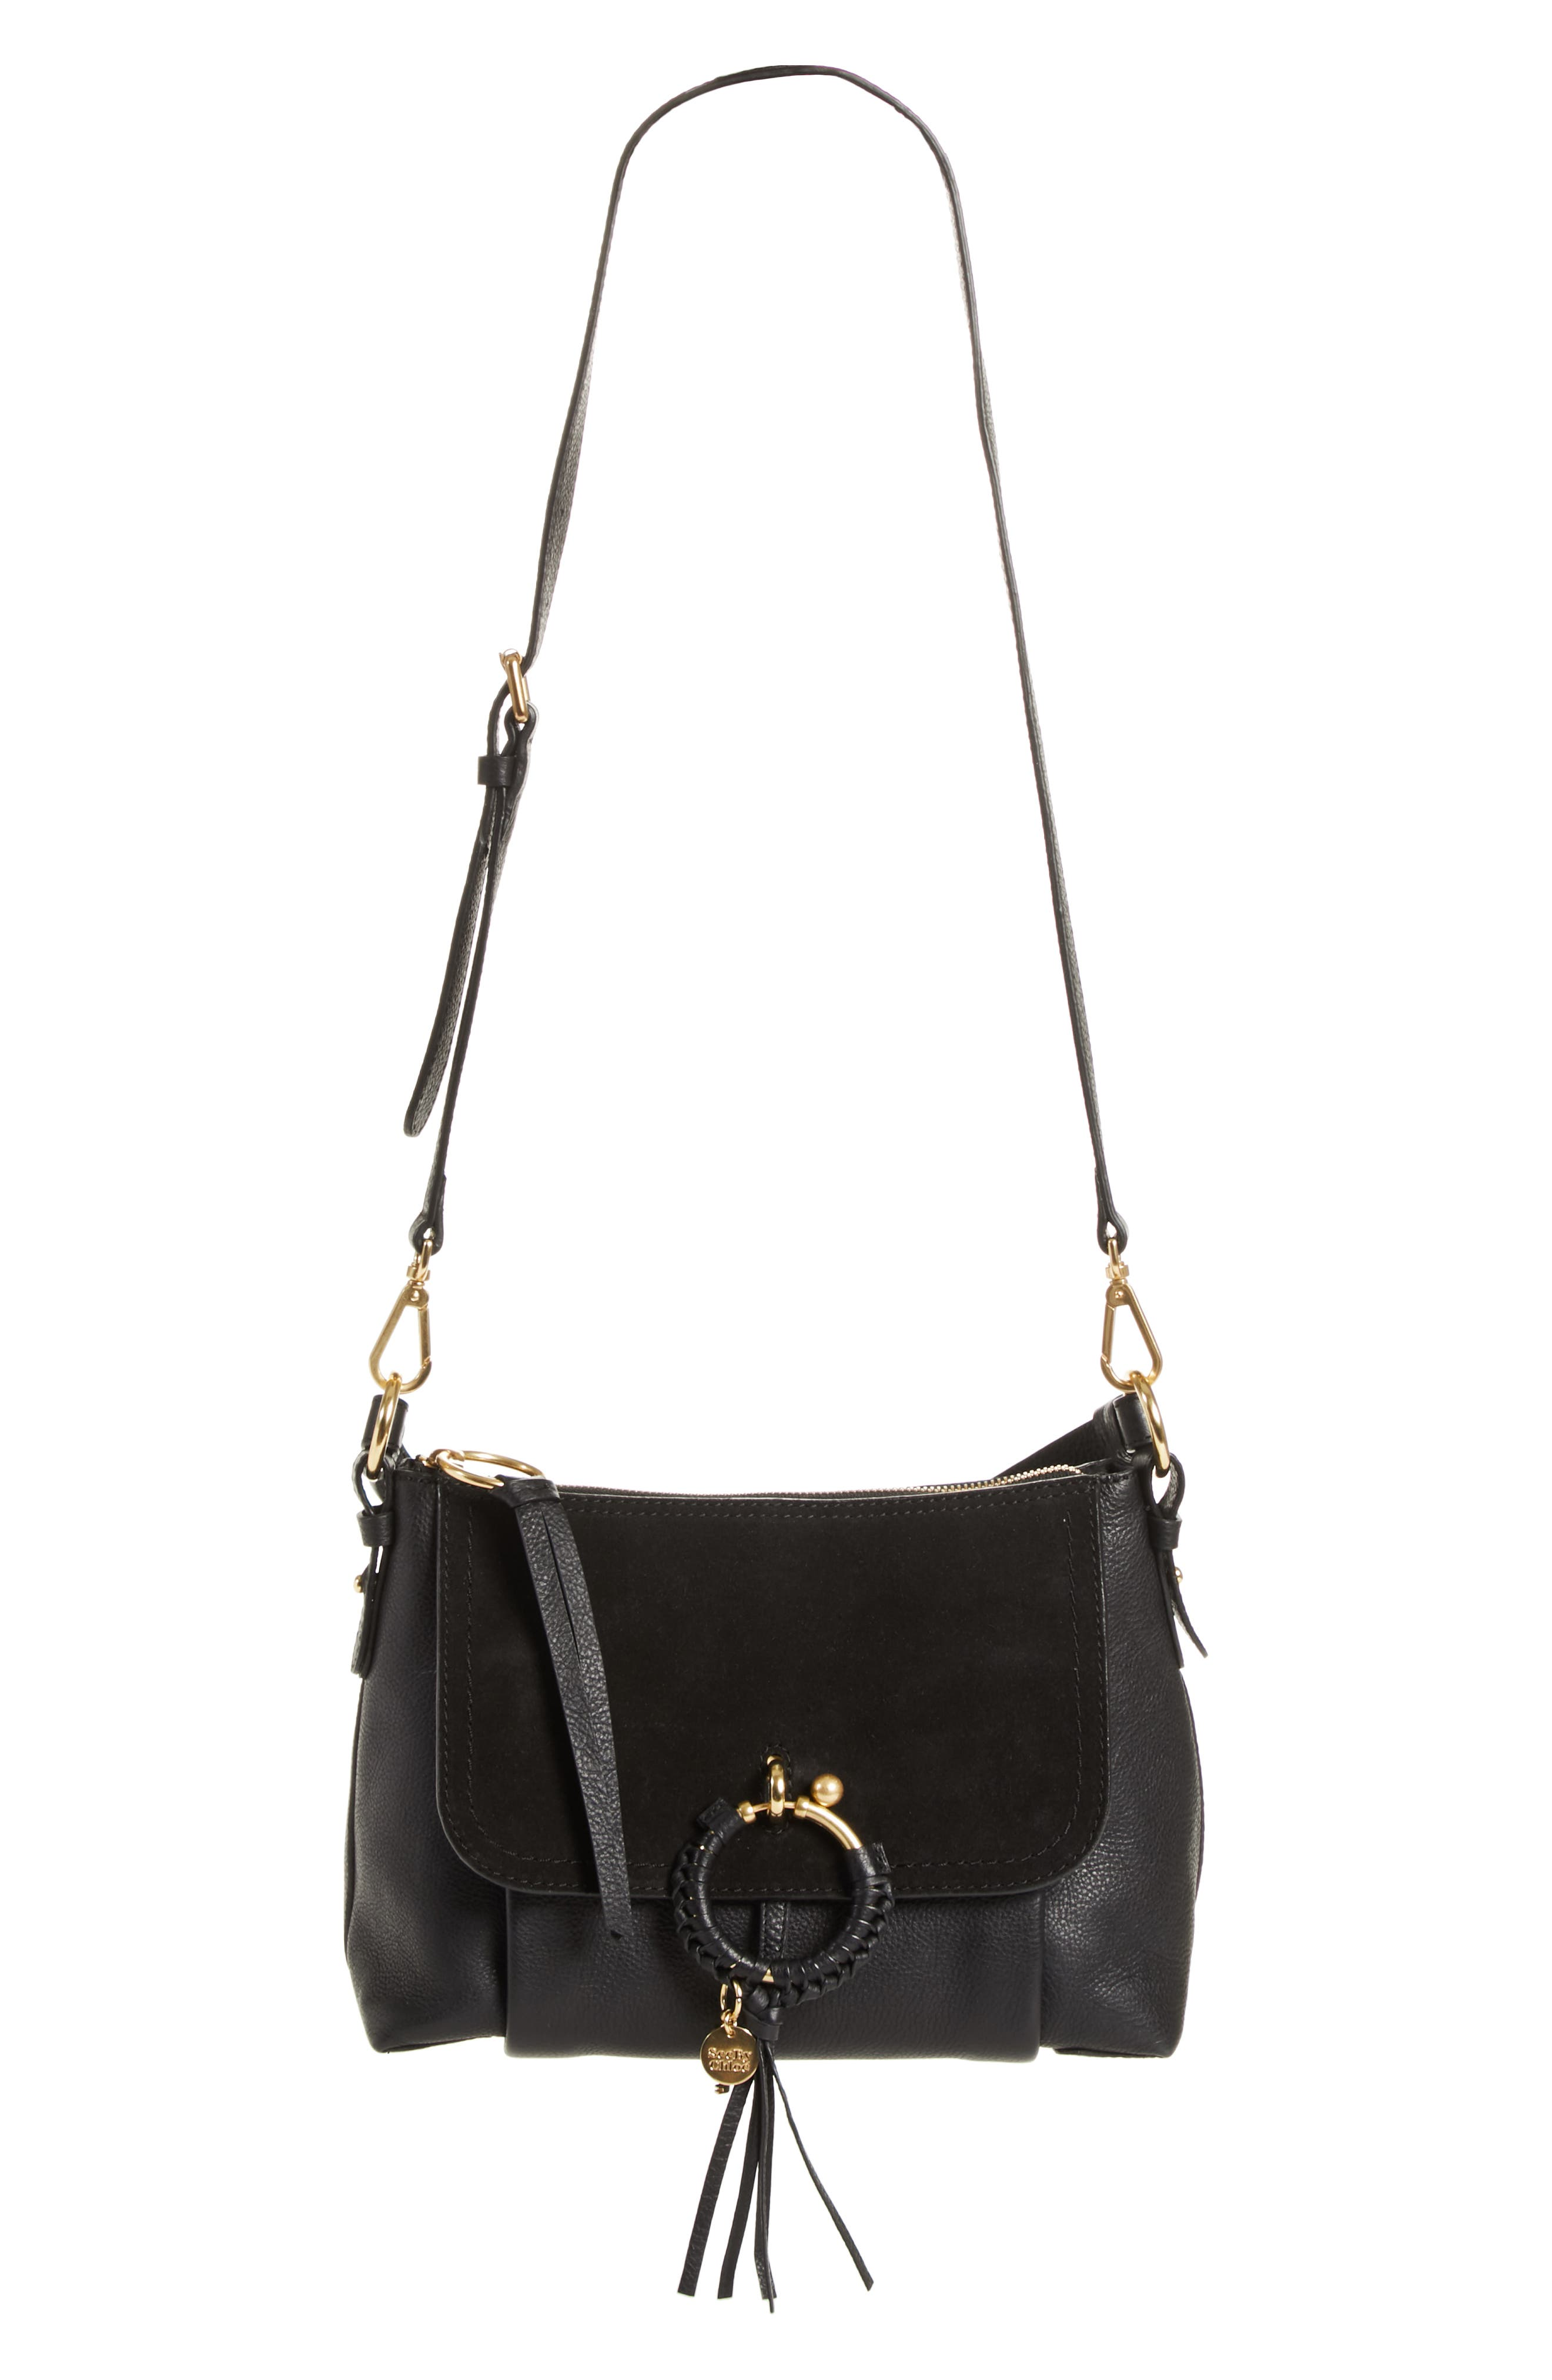 SEE BY CHLOÉ, Small Joan Suede & Leather Crossbody Bag, Main thumbnail 1, color, BLACK